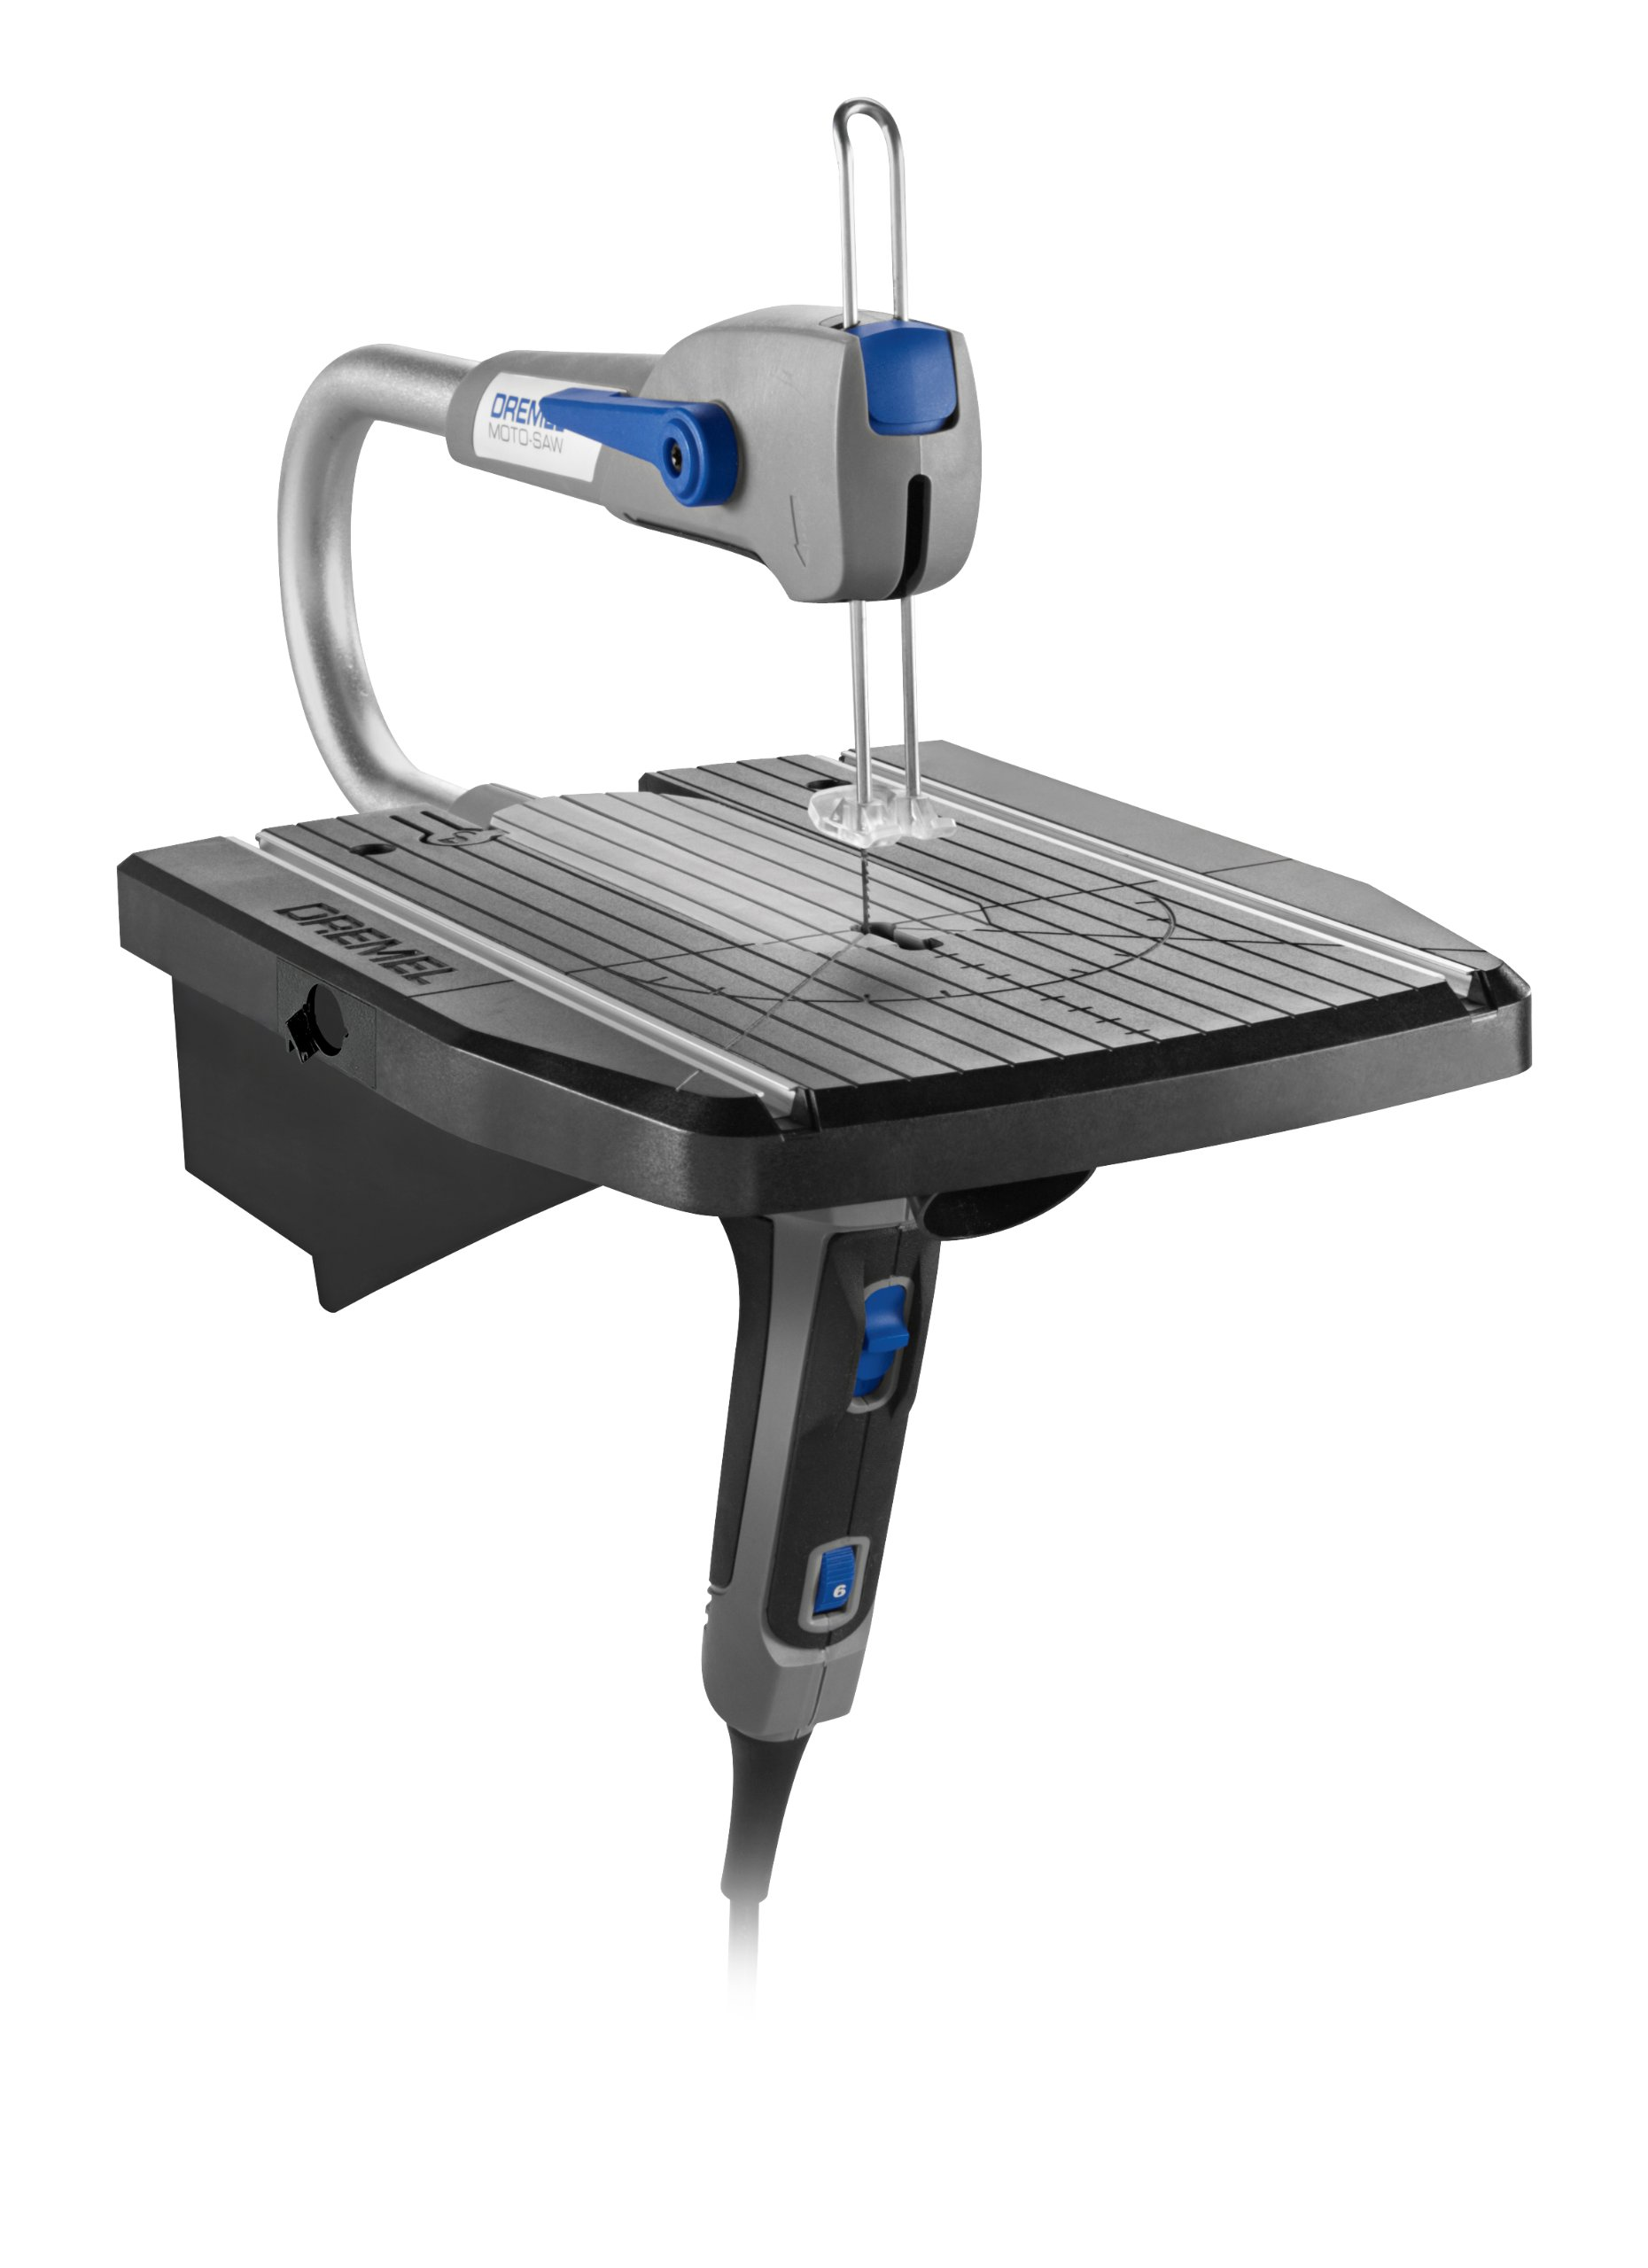 Dremel MS20-01 Moto-Saw Variable Speed Compact Scroll Saw Kit by Dremel